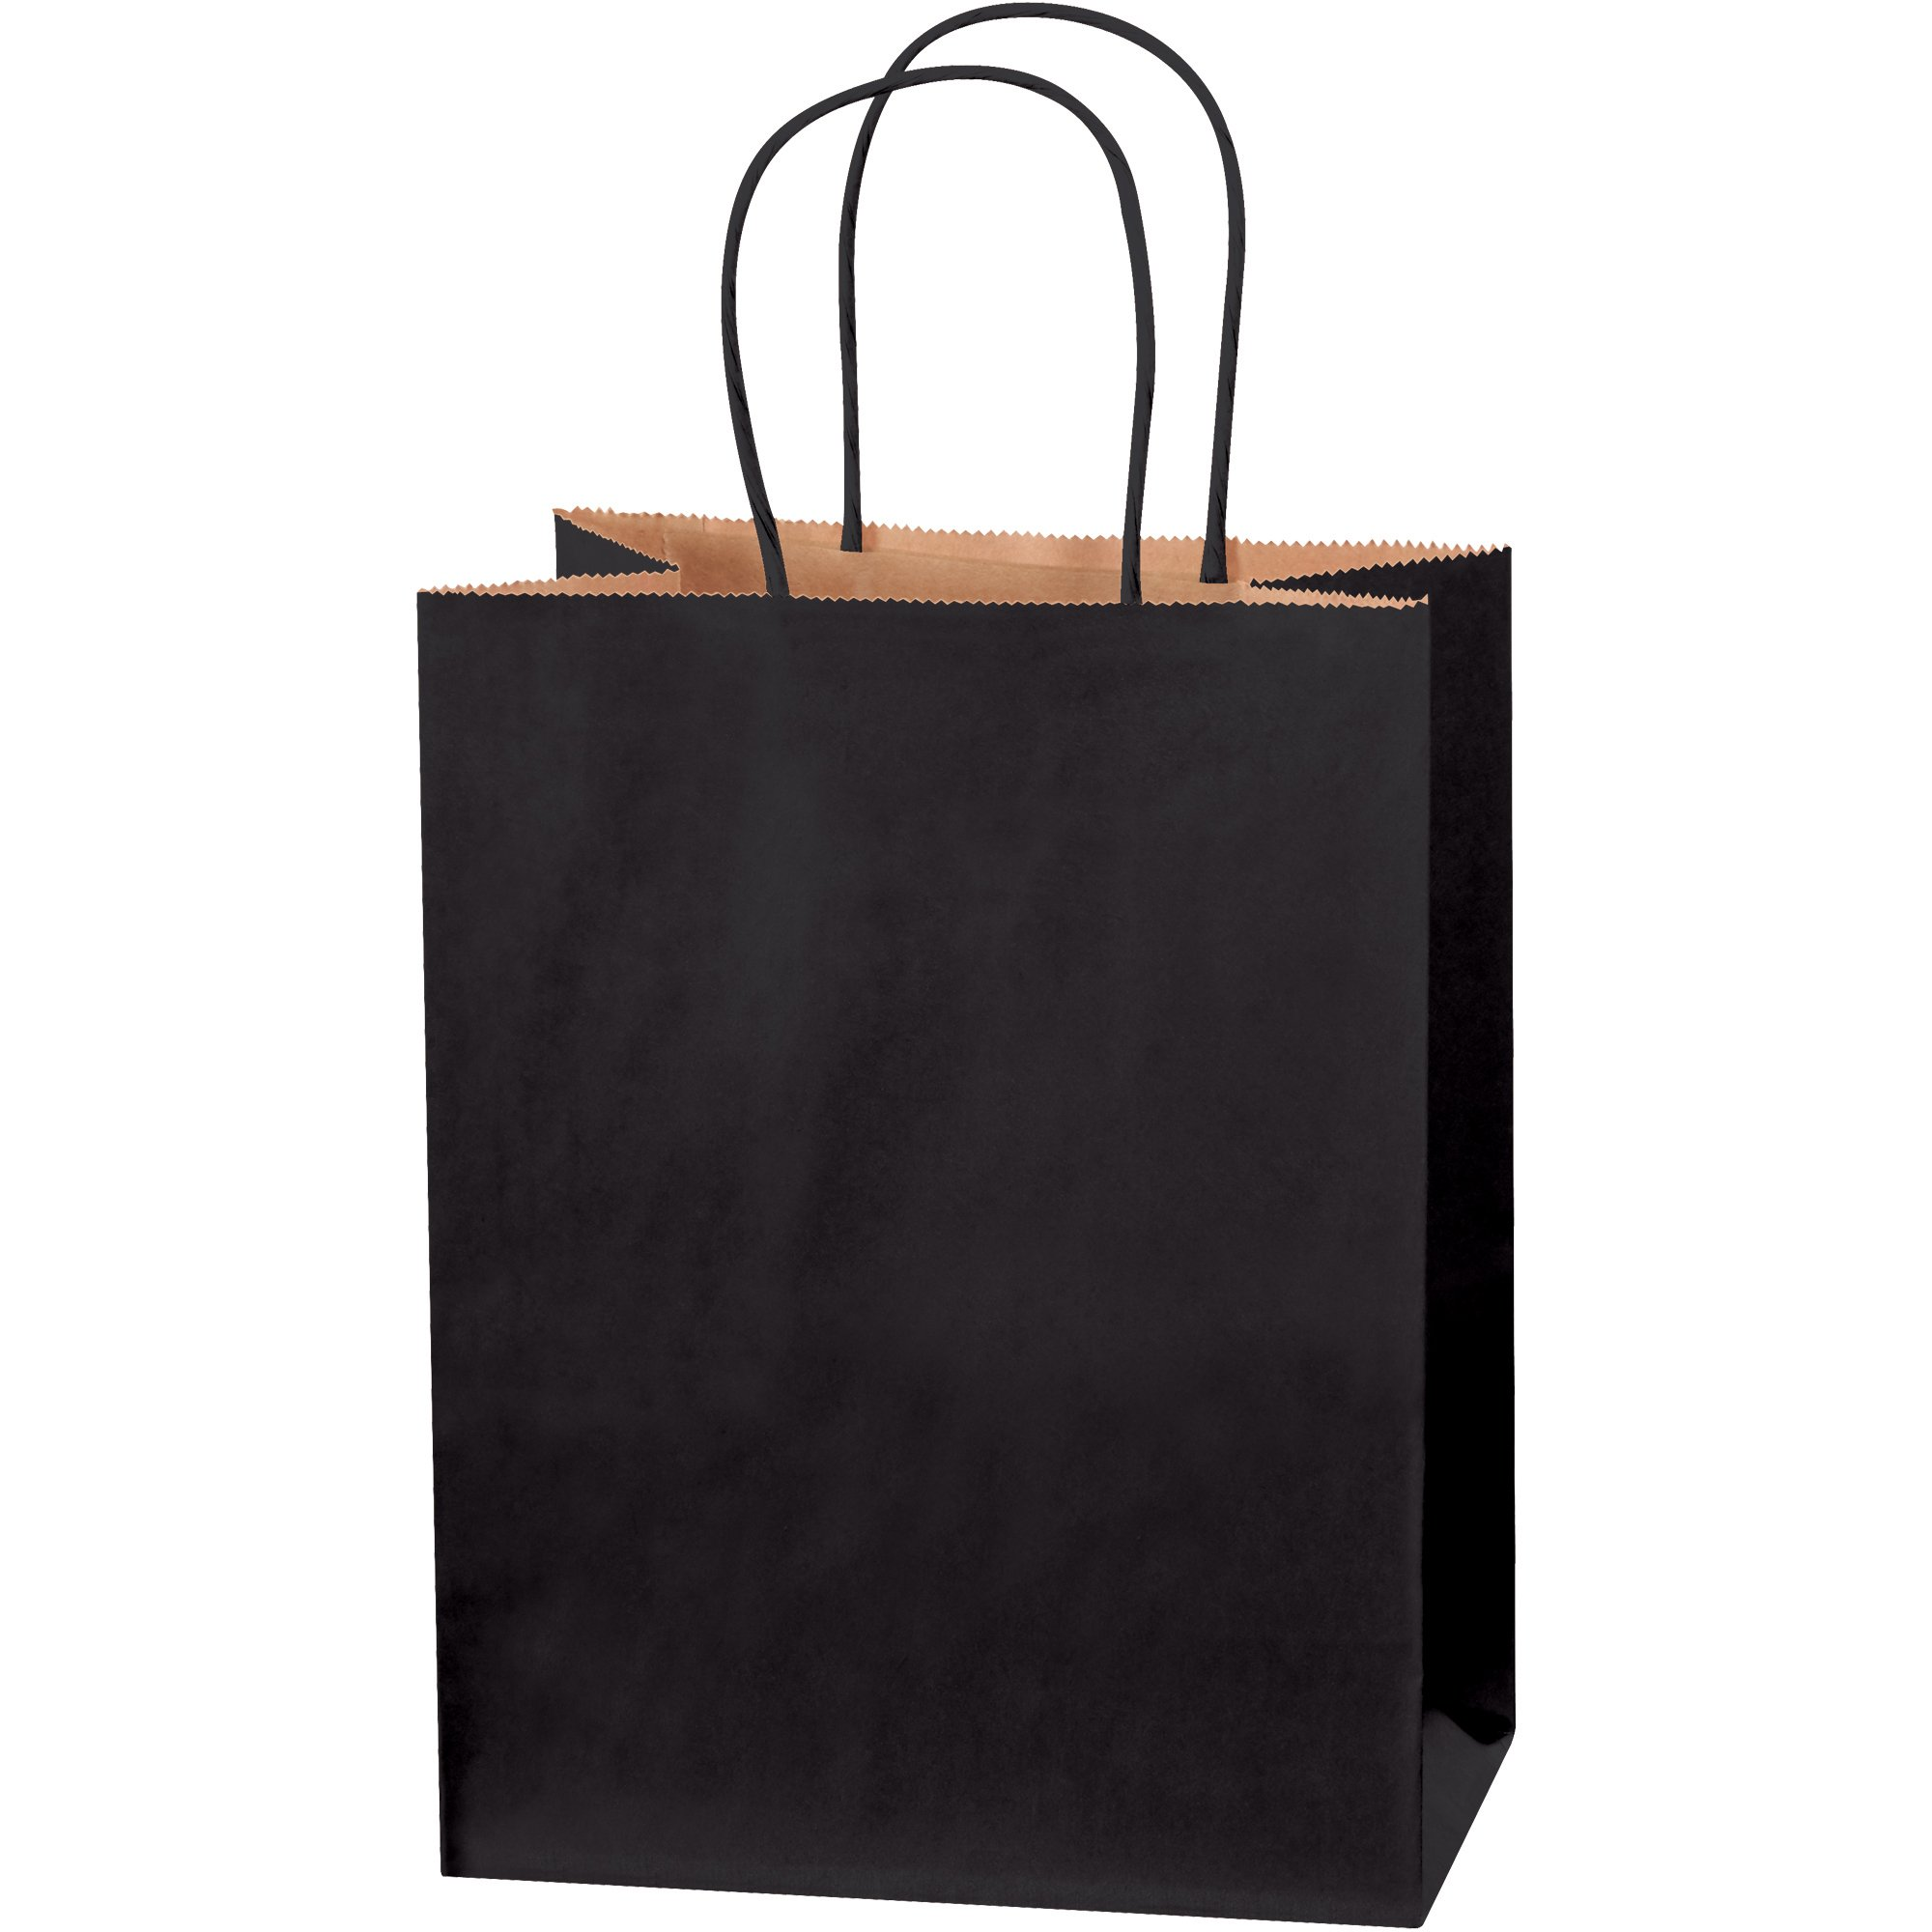 Tinted Shopping Bags, 8'' x 4 1/2'' x 10 1/4'', Black, 250/Case by Choice Shipping Supplies (Image #1)